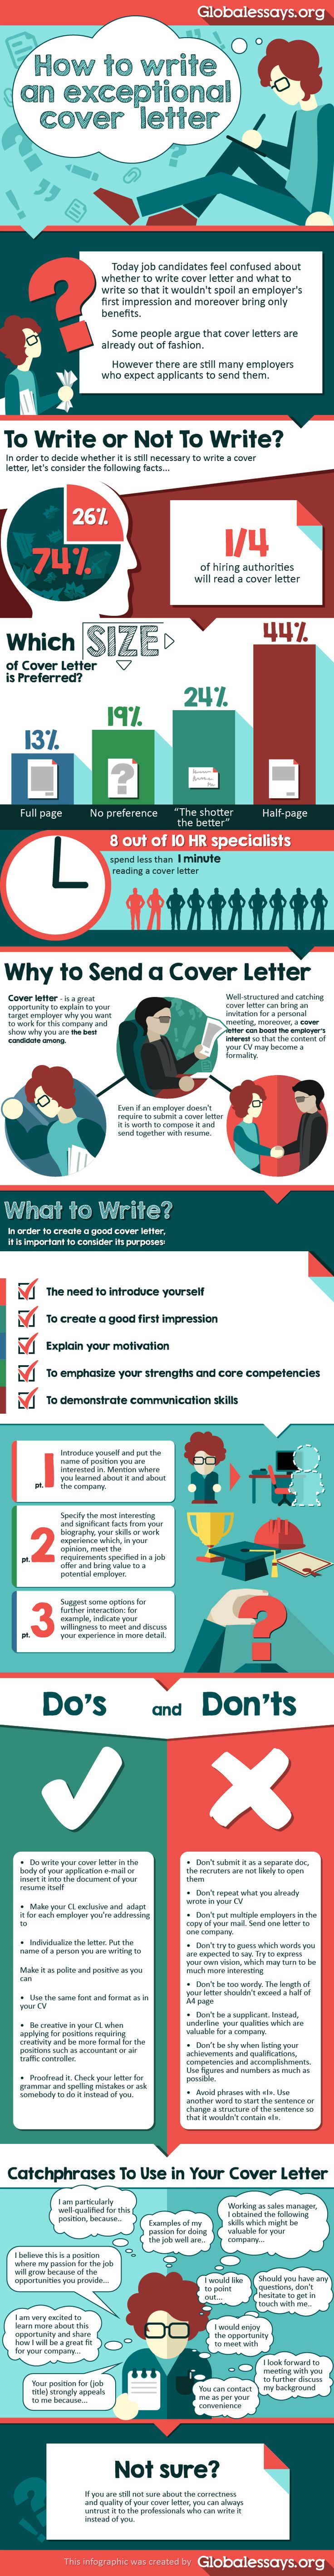 Best 20 cover letters ideas on pinterest cover letter example how to write an exceptional cover letter mitanshu Gallery